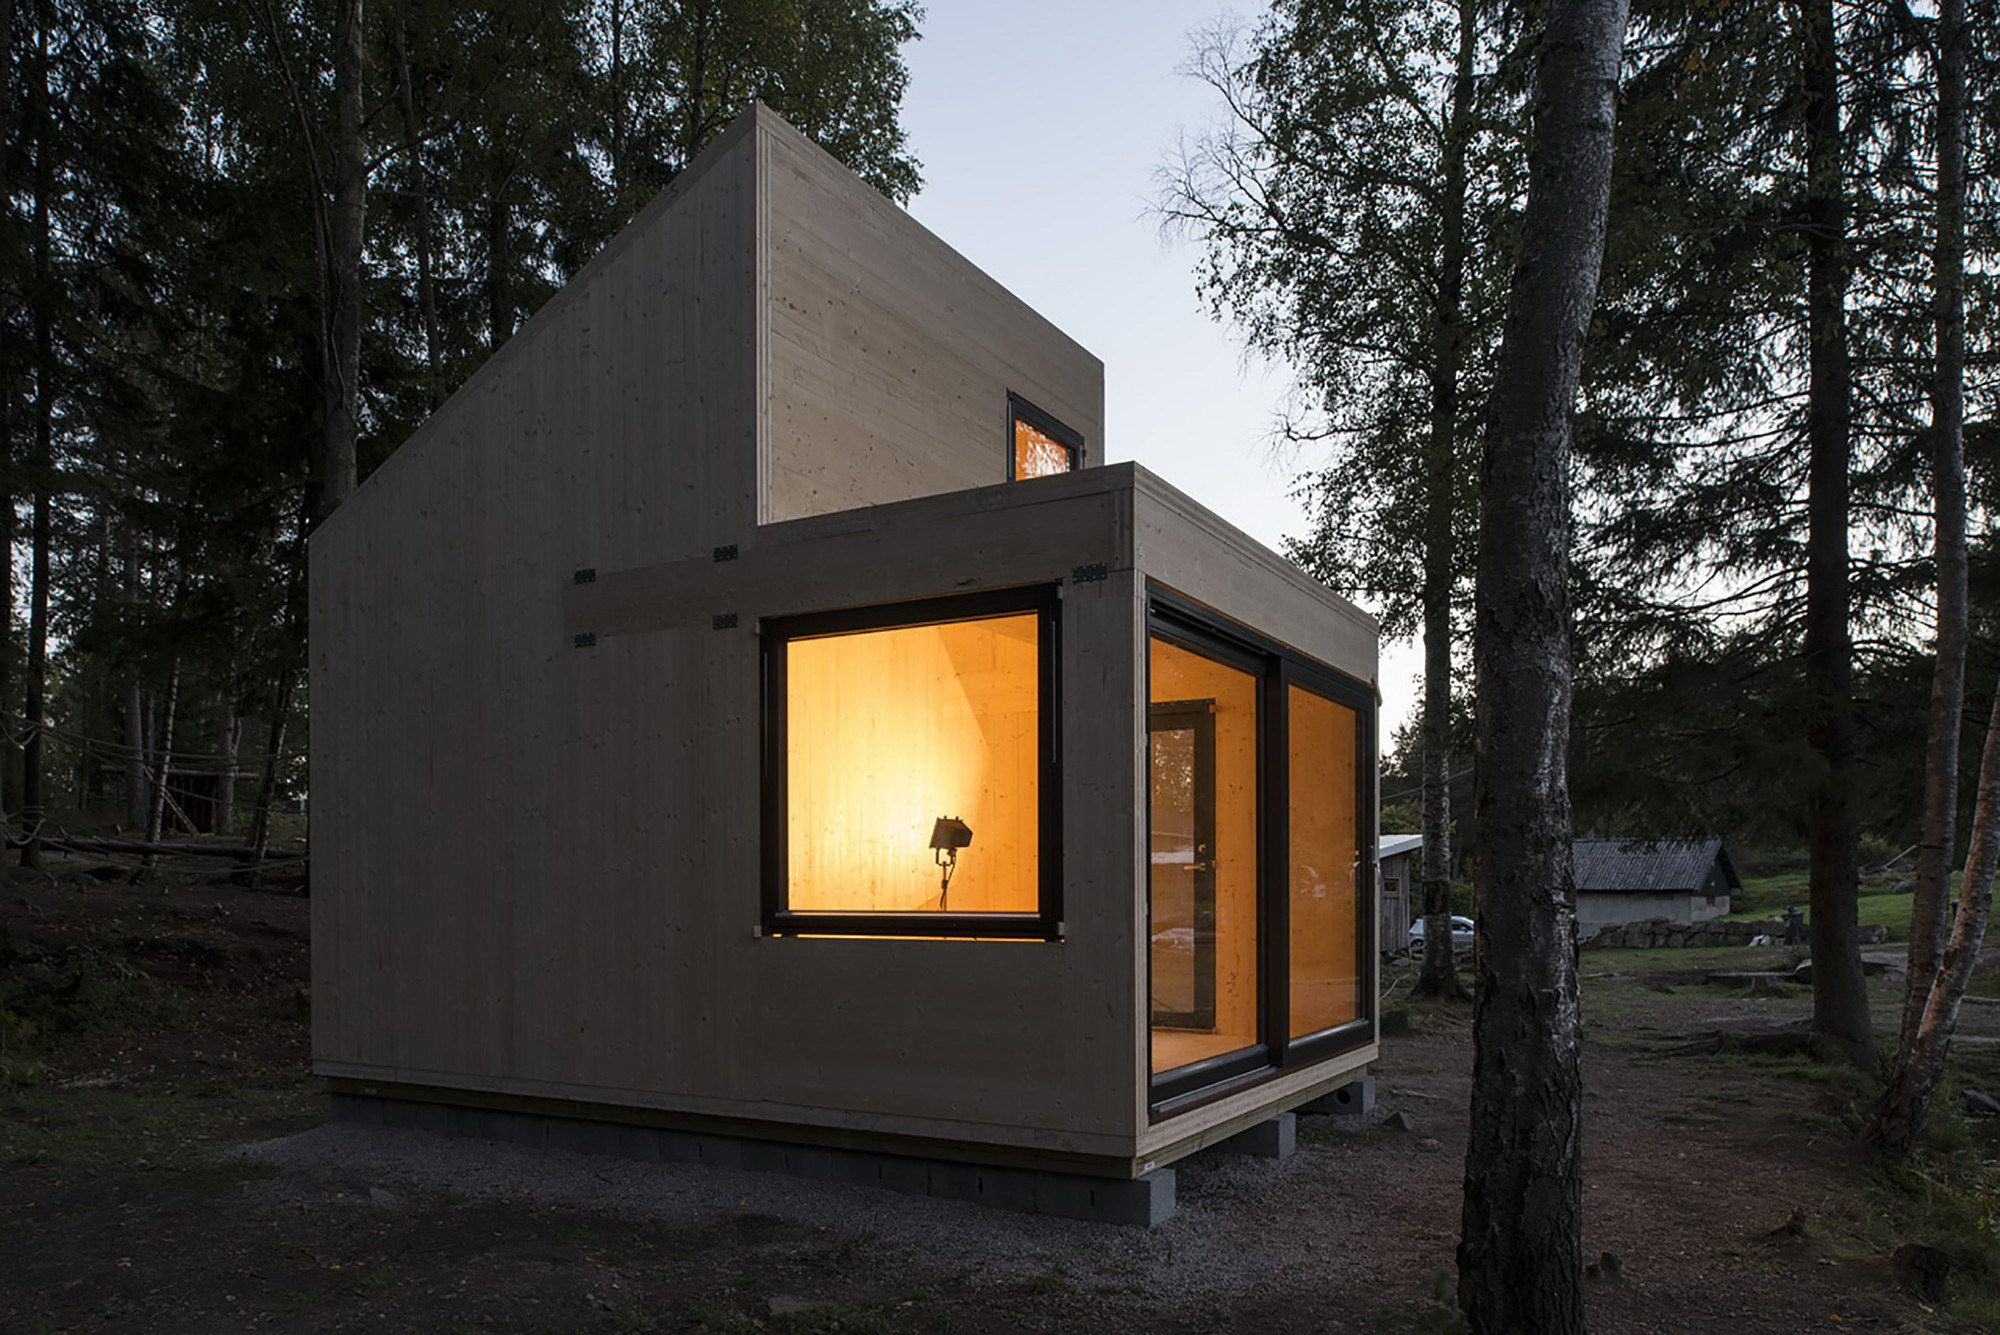 Woody15 A Tiny Cabin By Marianne Borge лофт дом